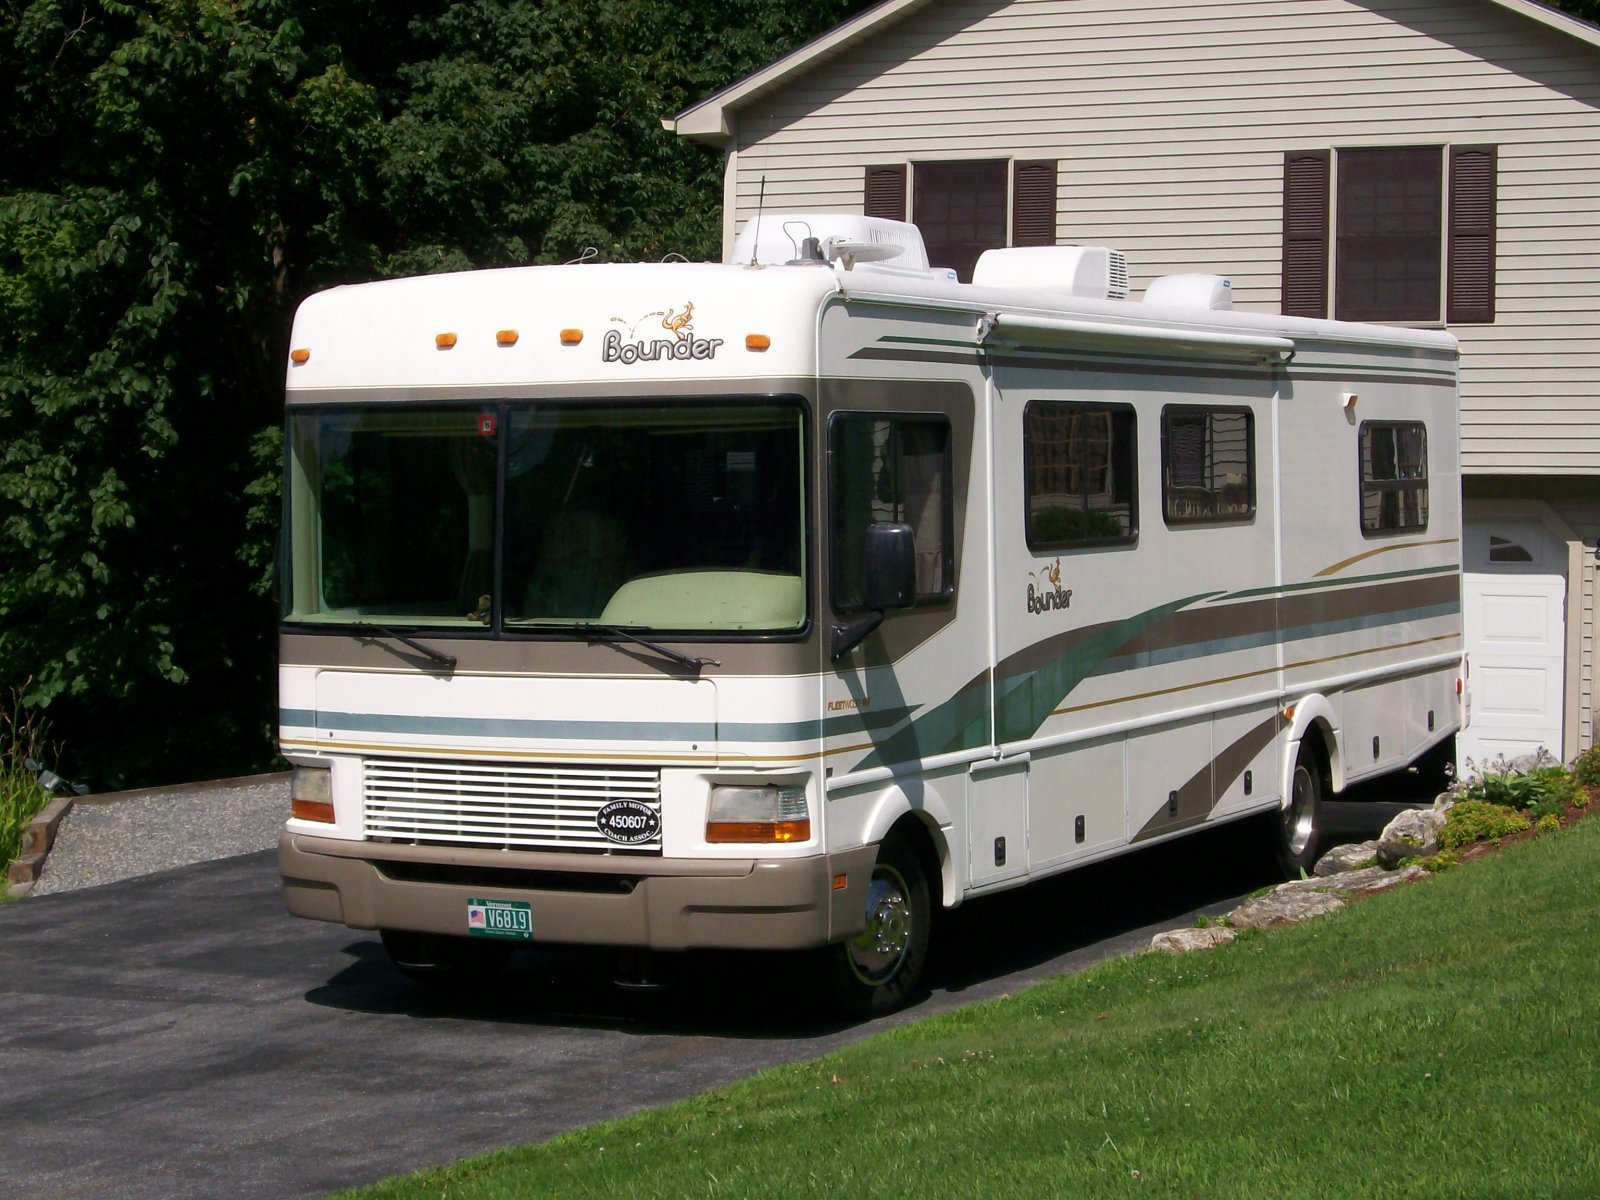 Ways You Can Use Your RV During The COVID-19 Crisis